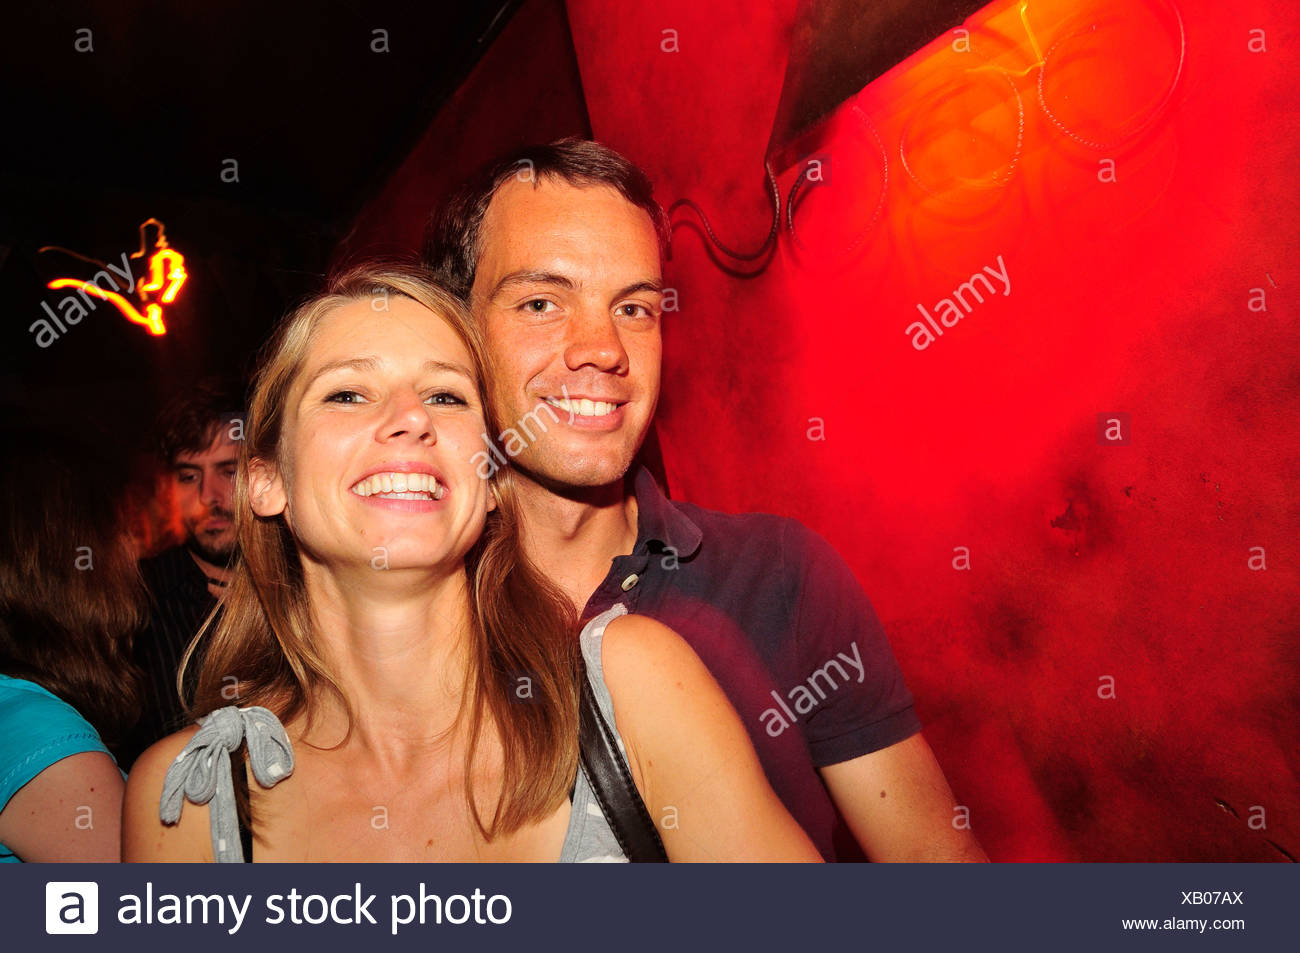 Young couple in a night club, nightlife, Madrid, Spain, Iberian Peninsula, Europe - Stock Image